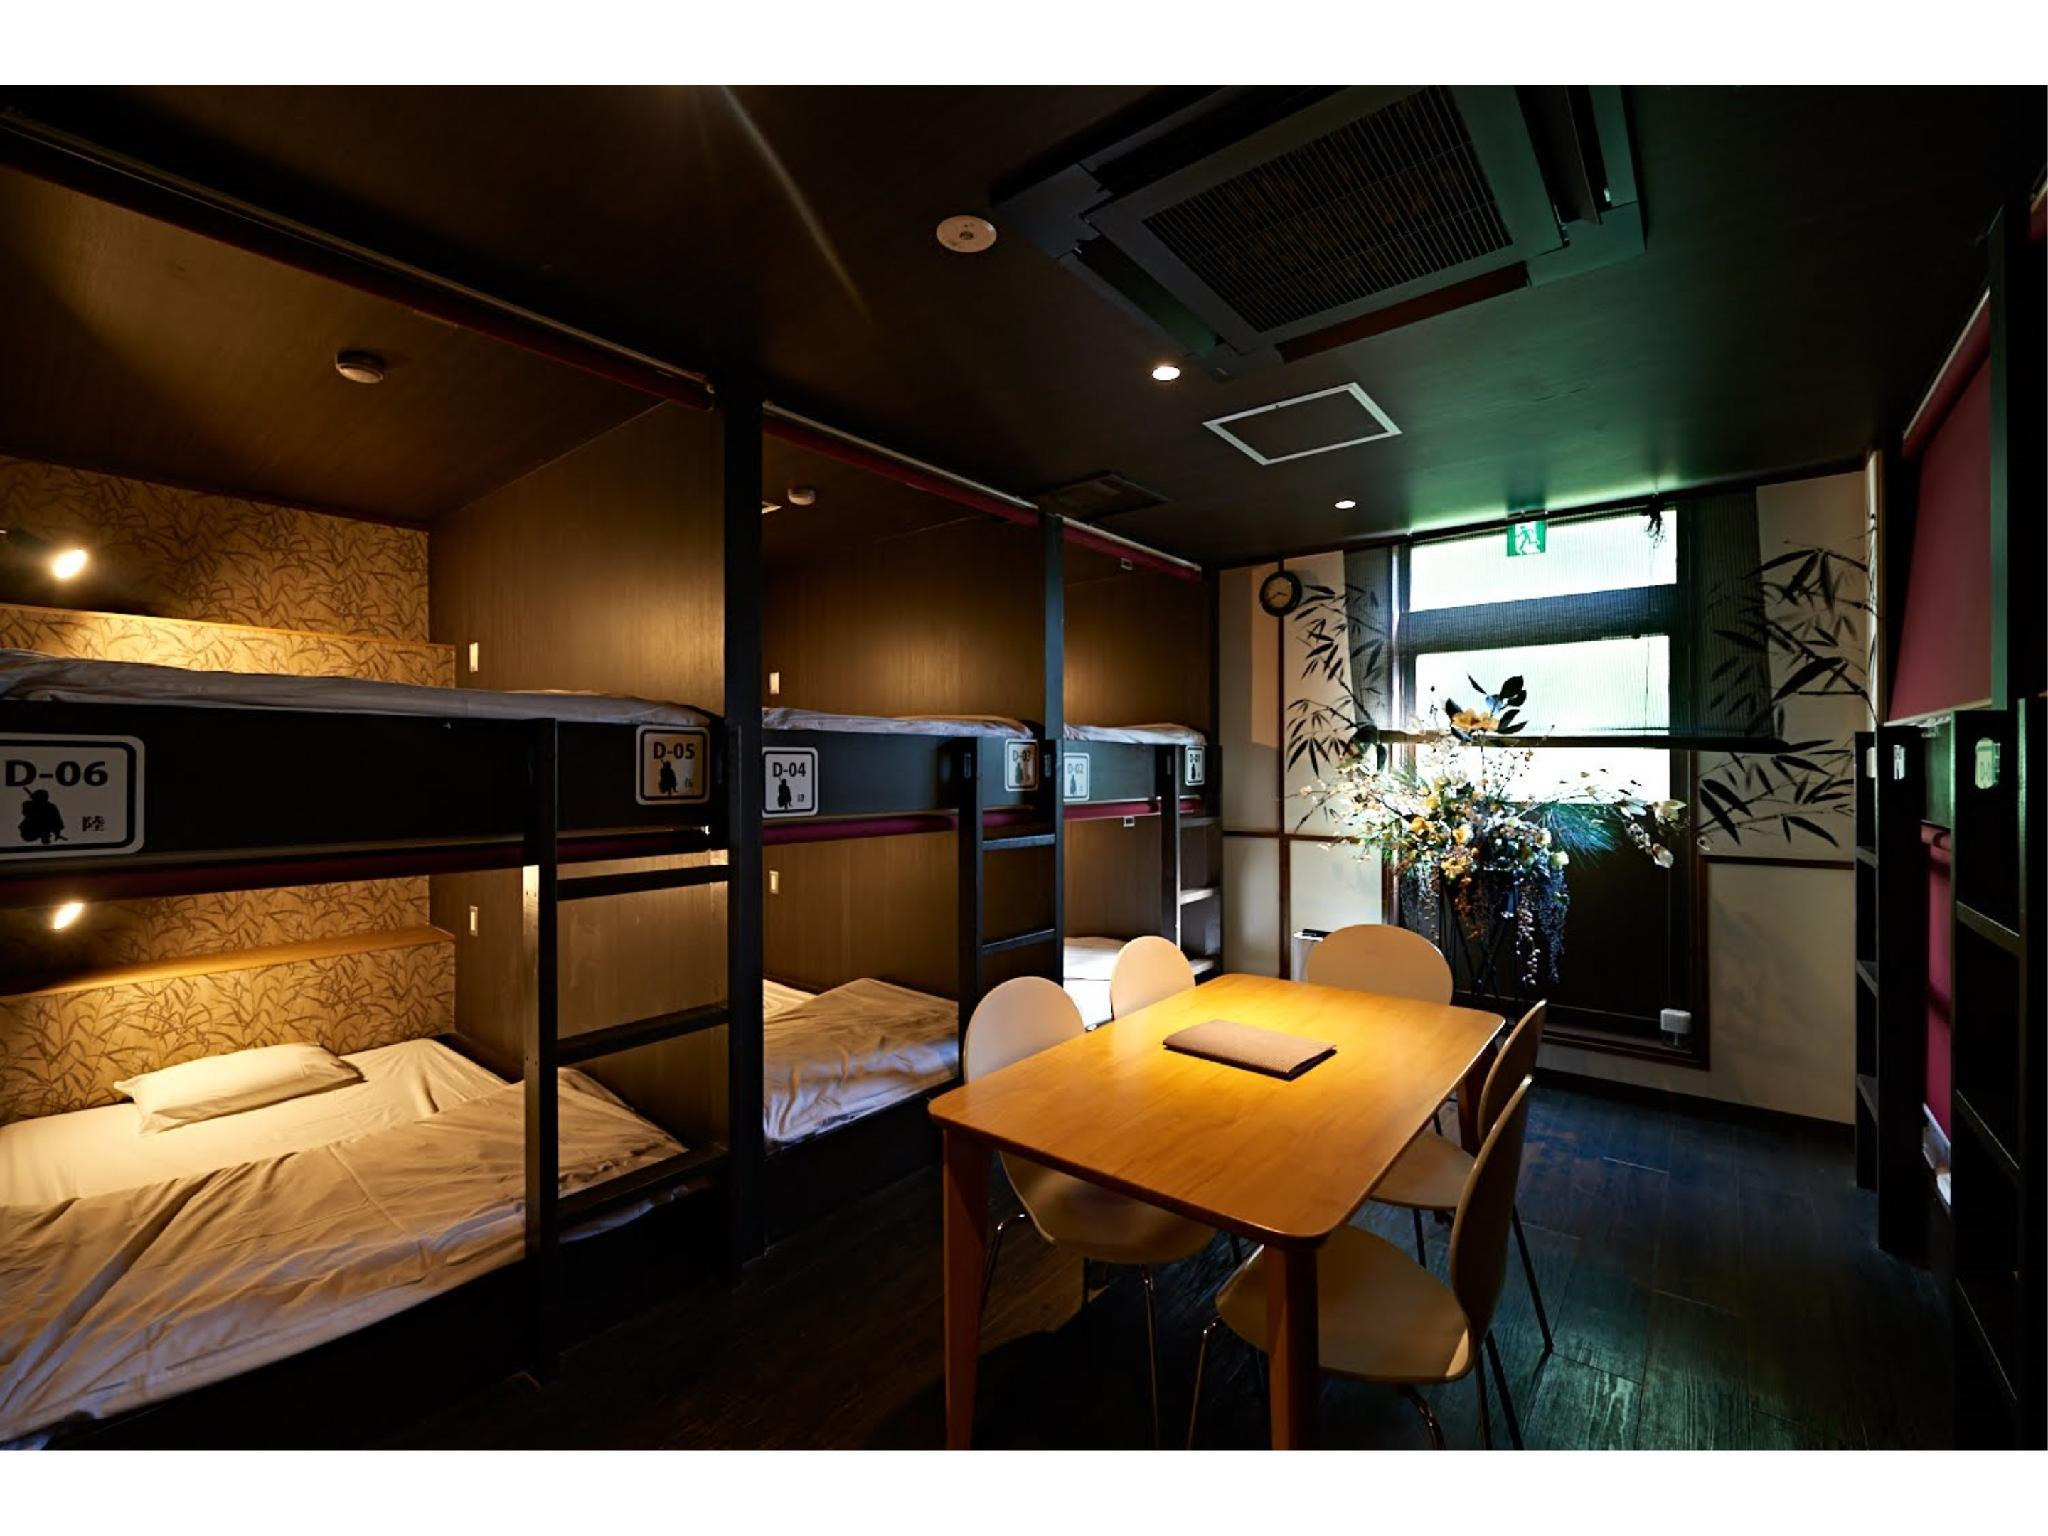 合住房 (Mixed Dormitory Room)